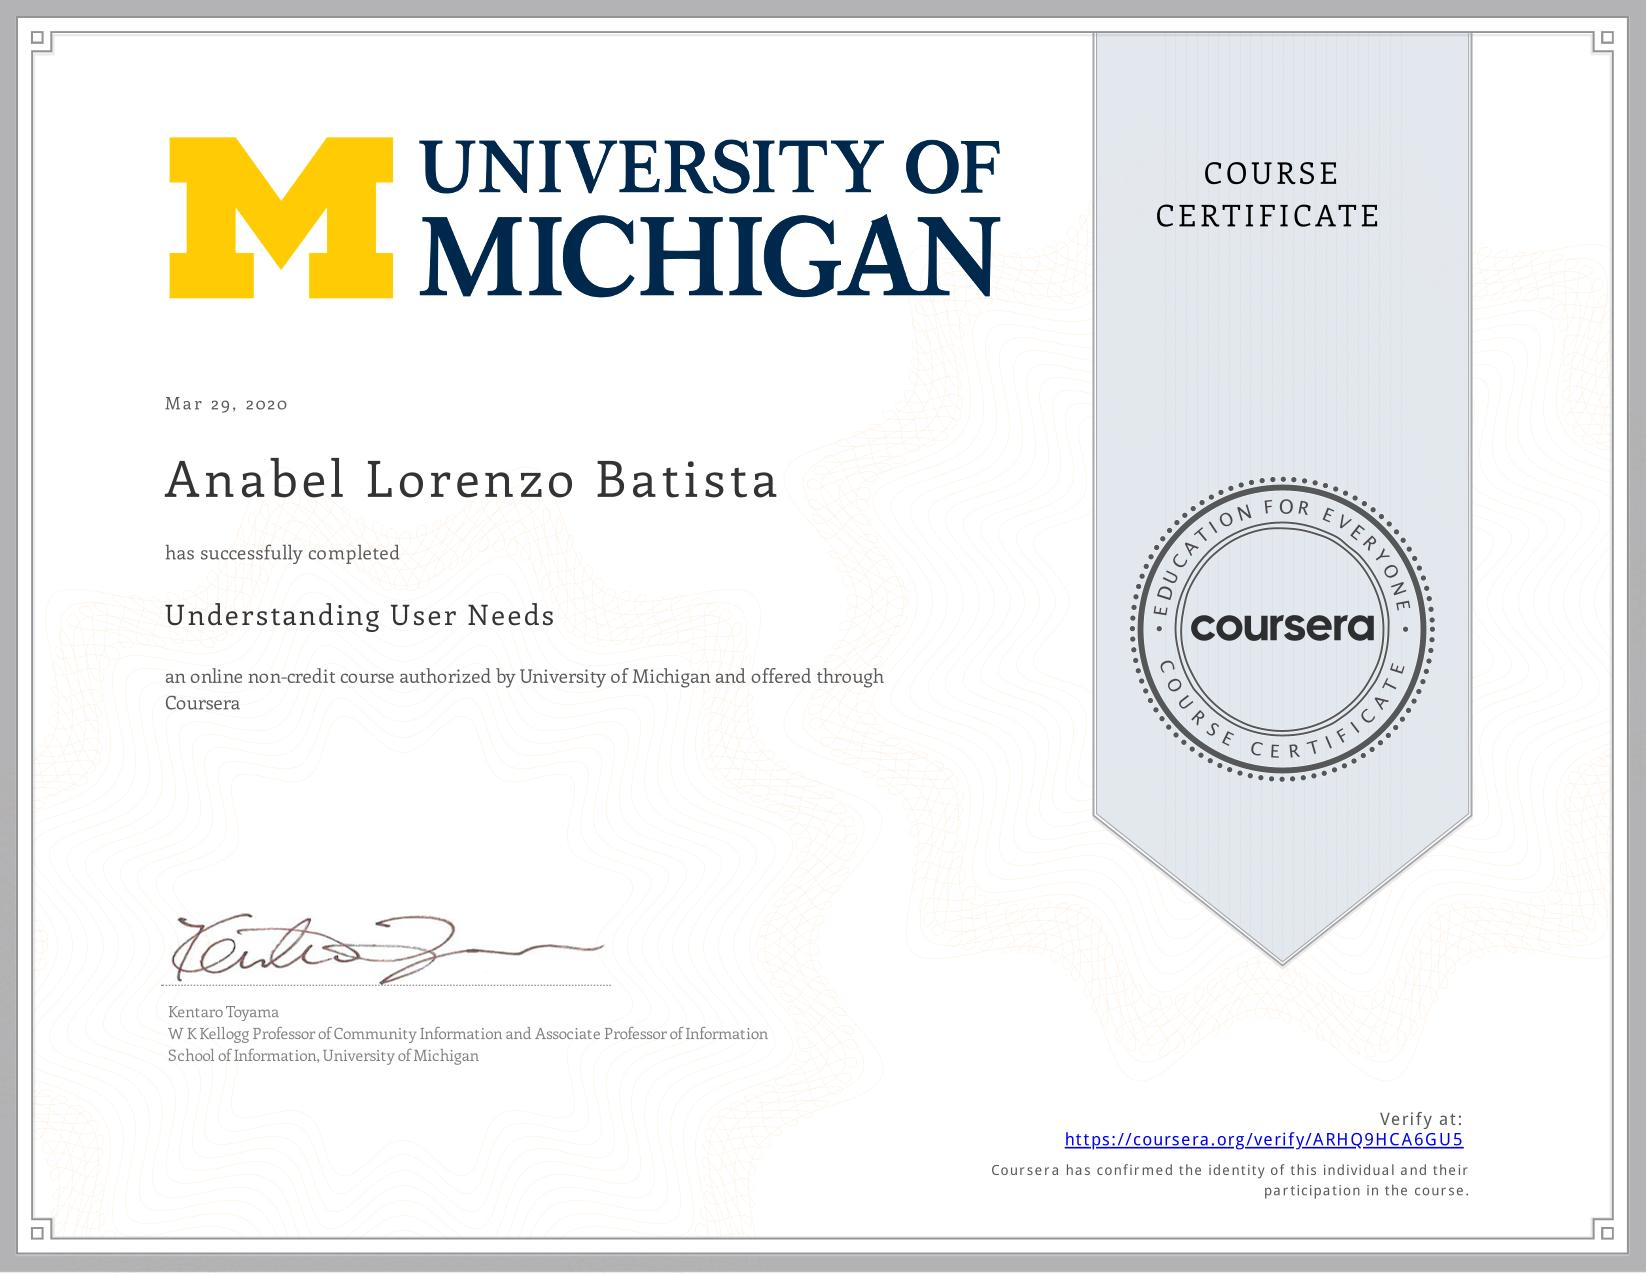 View certificate for Anabel Lorenzo Batista, Understanding User Needs, an online non-credit course authorized by University of Michigan and offered through Coursera